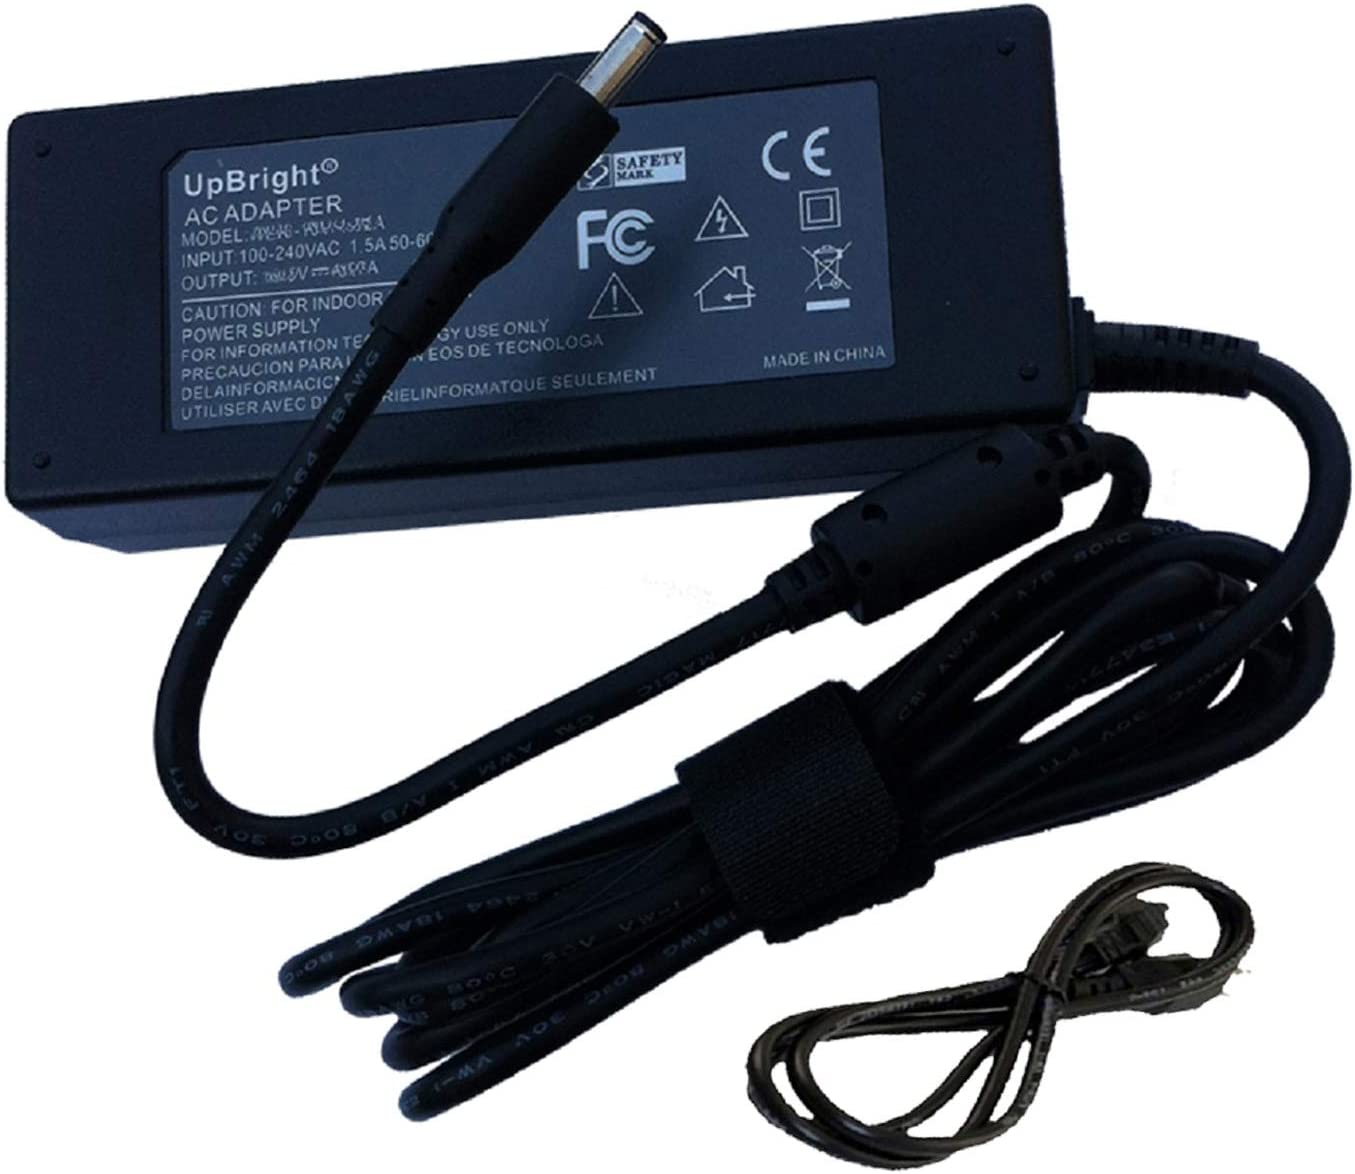 UpBright New 19.5V 3.34A 65W AC Adapter New product!! DC Replacement Popular brand for Dell